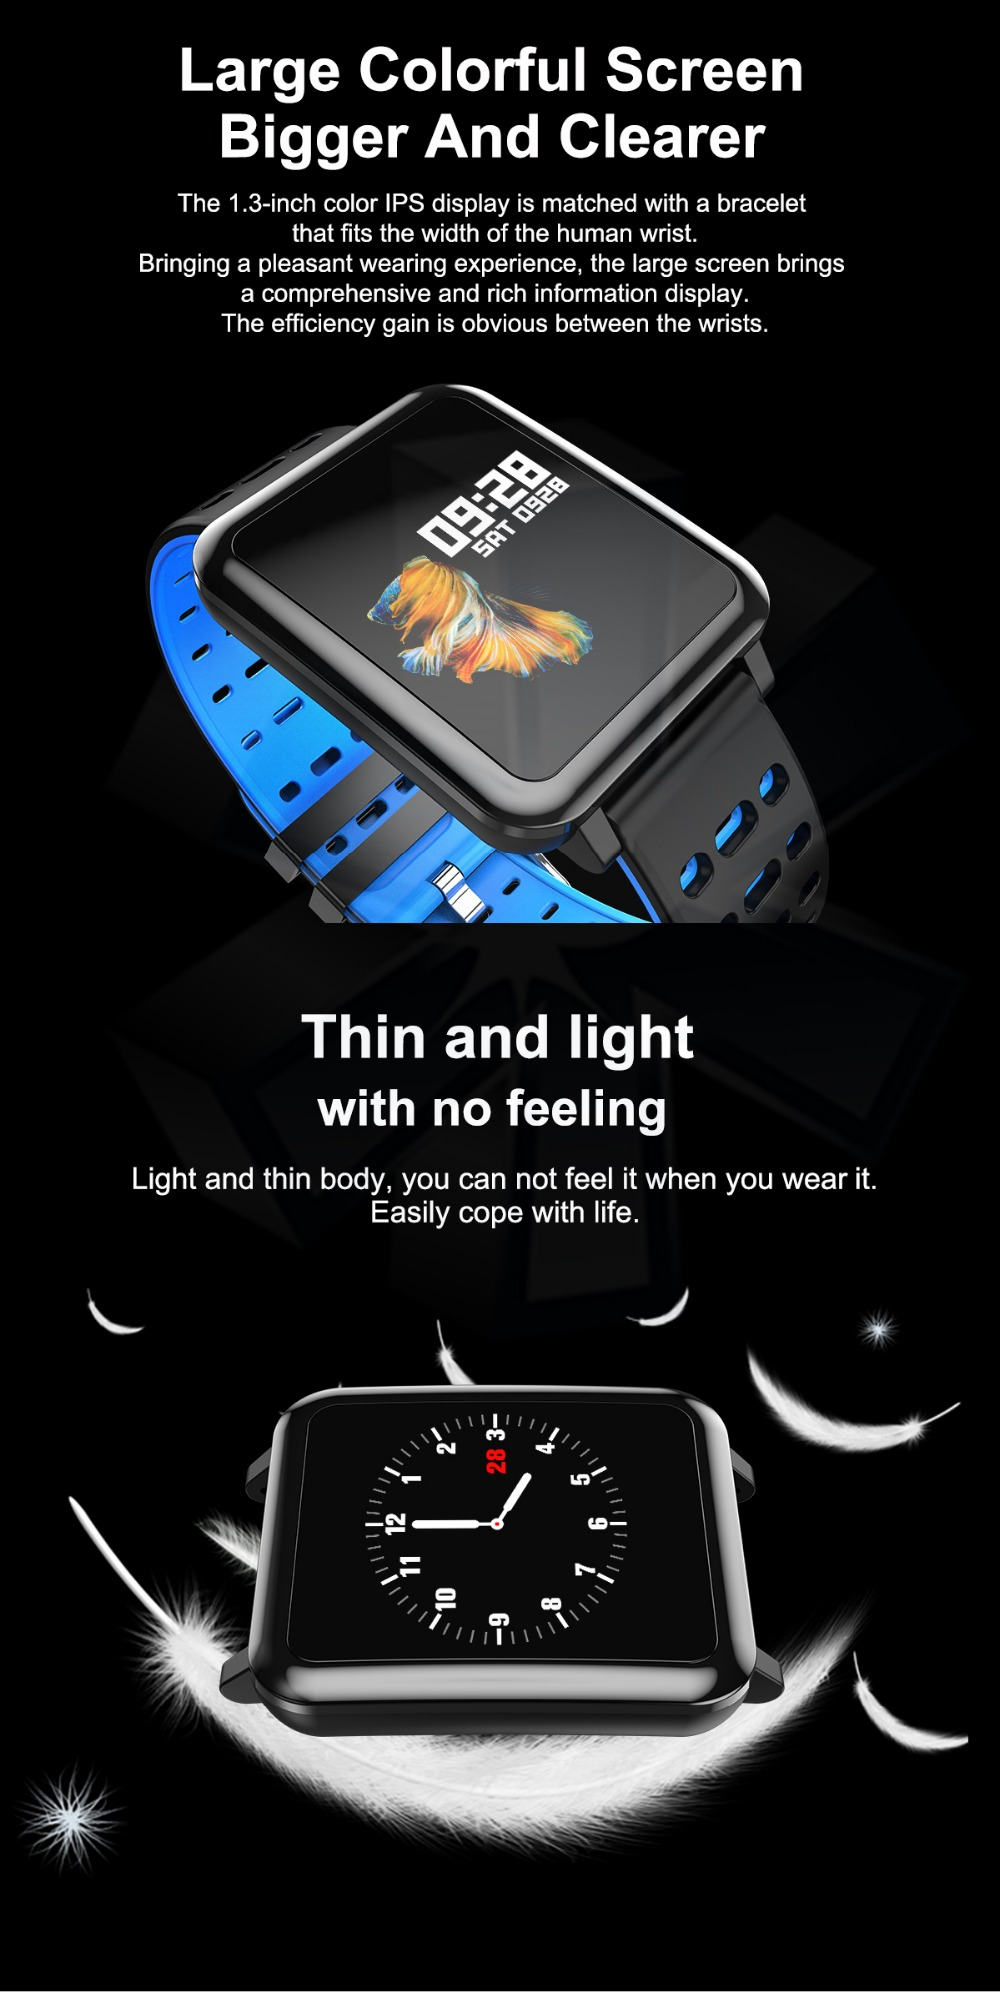 T2 Smartwatch IP67 Waterproof Wearable Device Bluetooth Pedometer Heart Rate Monitor Color Display Smart Watch For AndroidIOS (2)